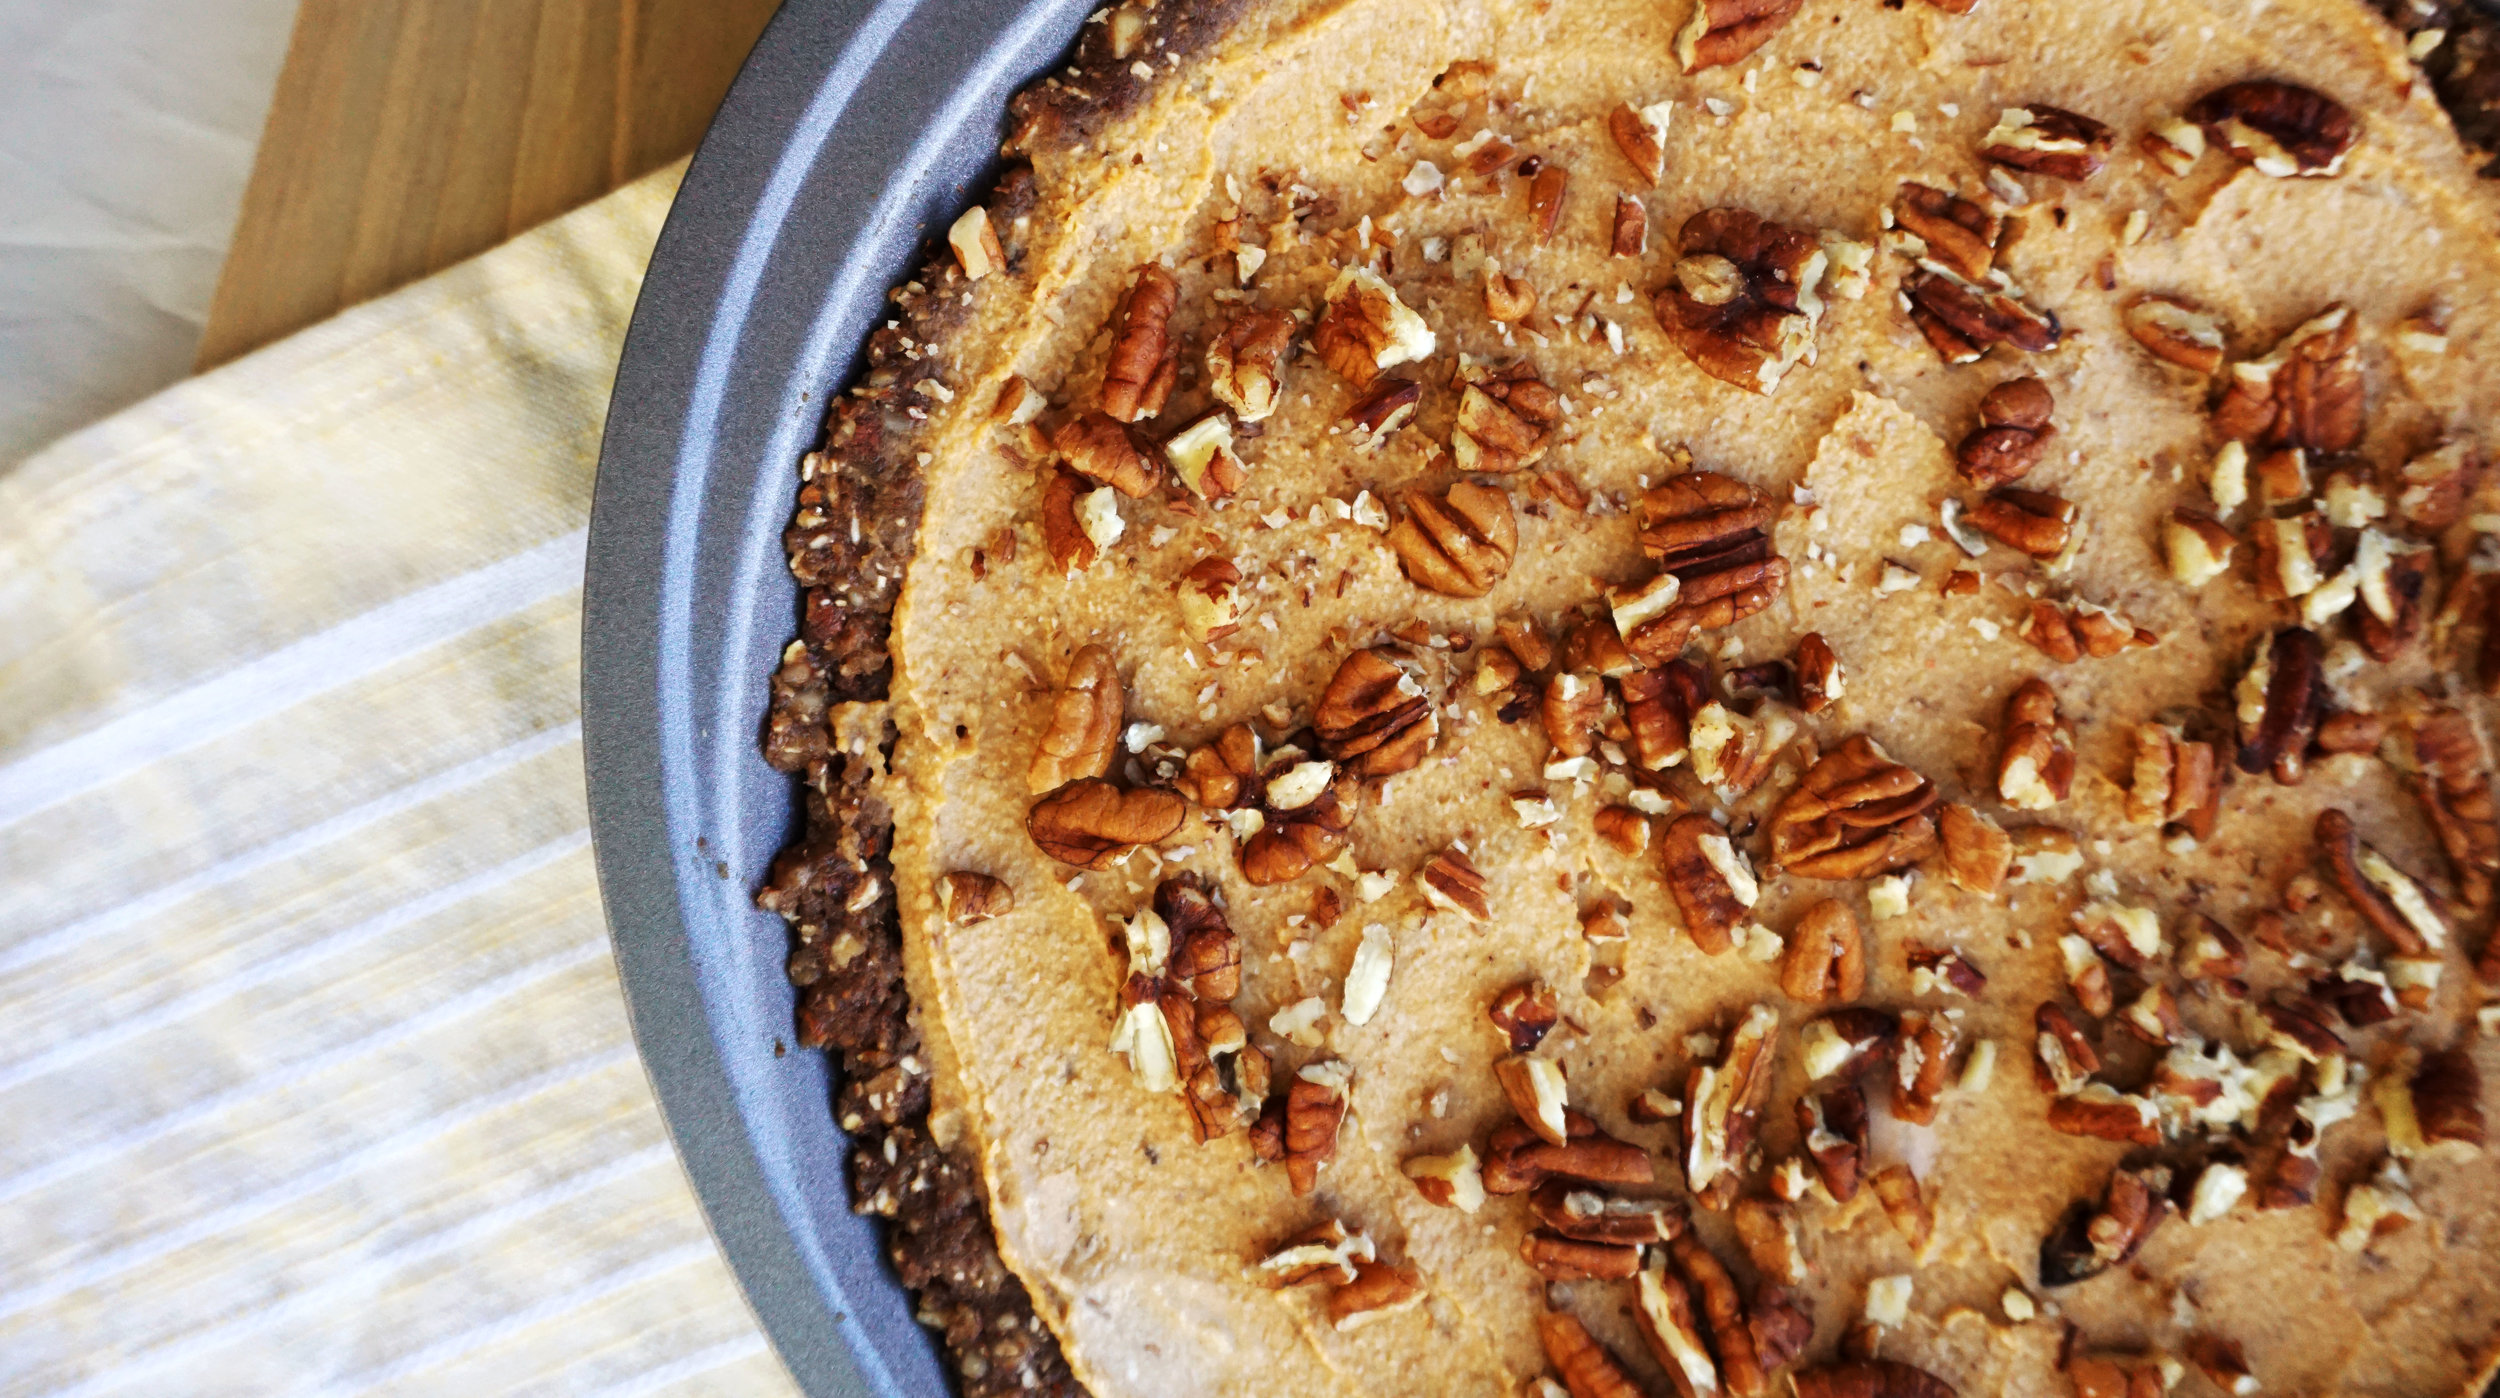 Creamy Sweet Potato Pecan Pie (Vegan, Paleo, No-Bake)